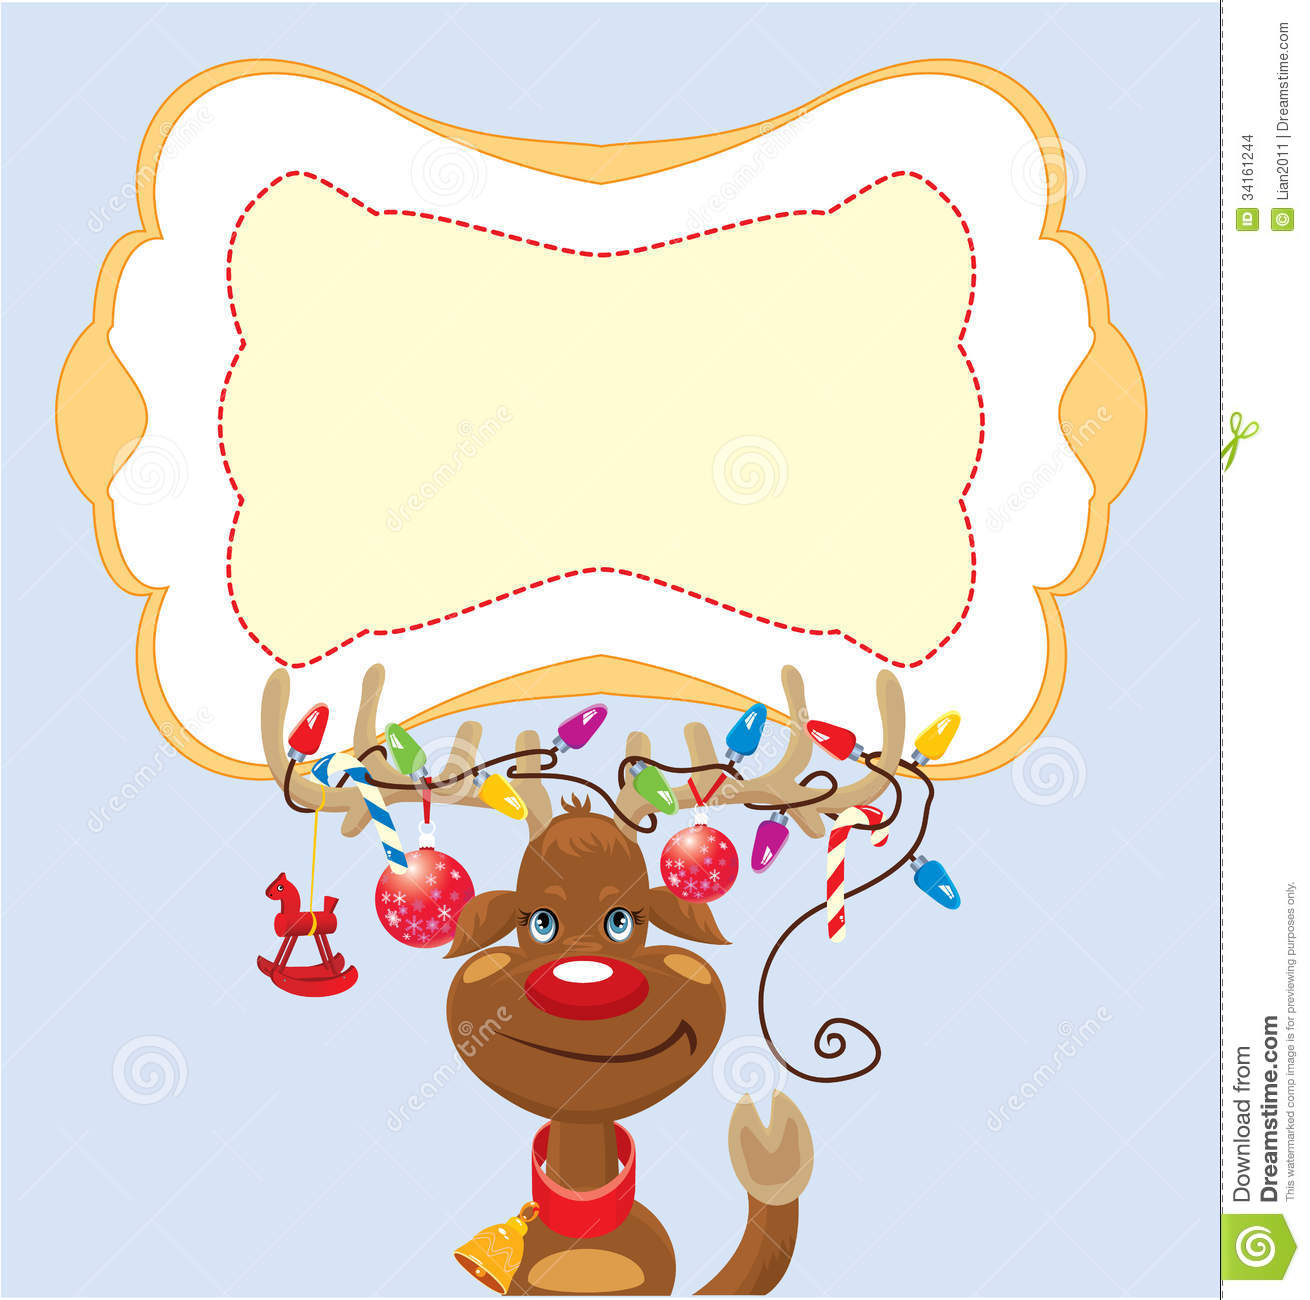 funny reindeer with christmas lights tangled in an stock images image 34161244. Black Bedroom Furniture Sets. Home Design Ideas